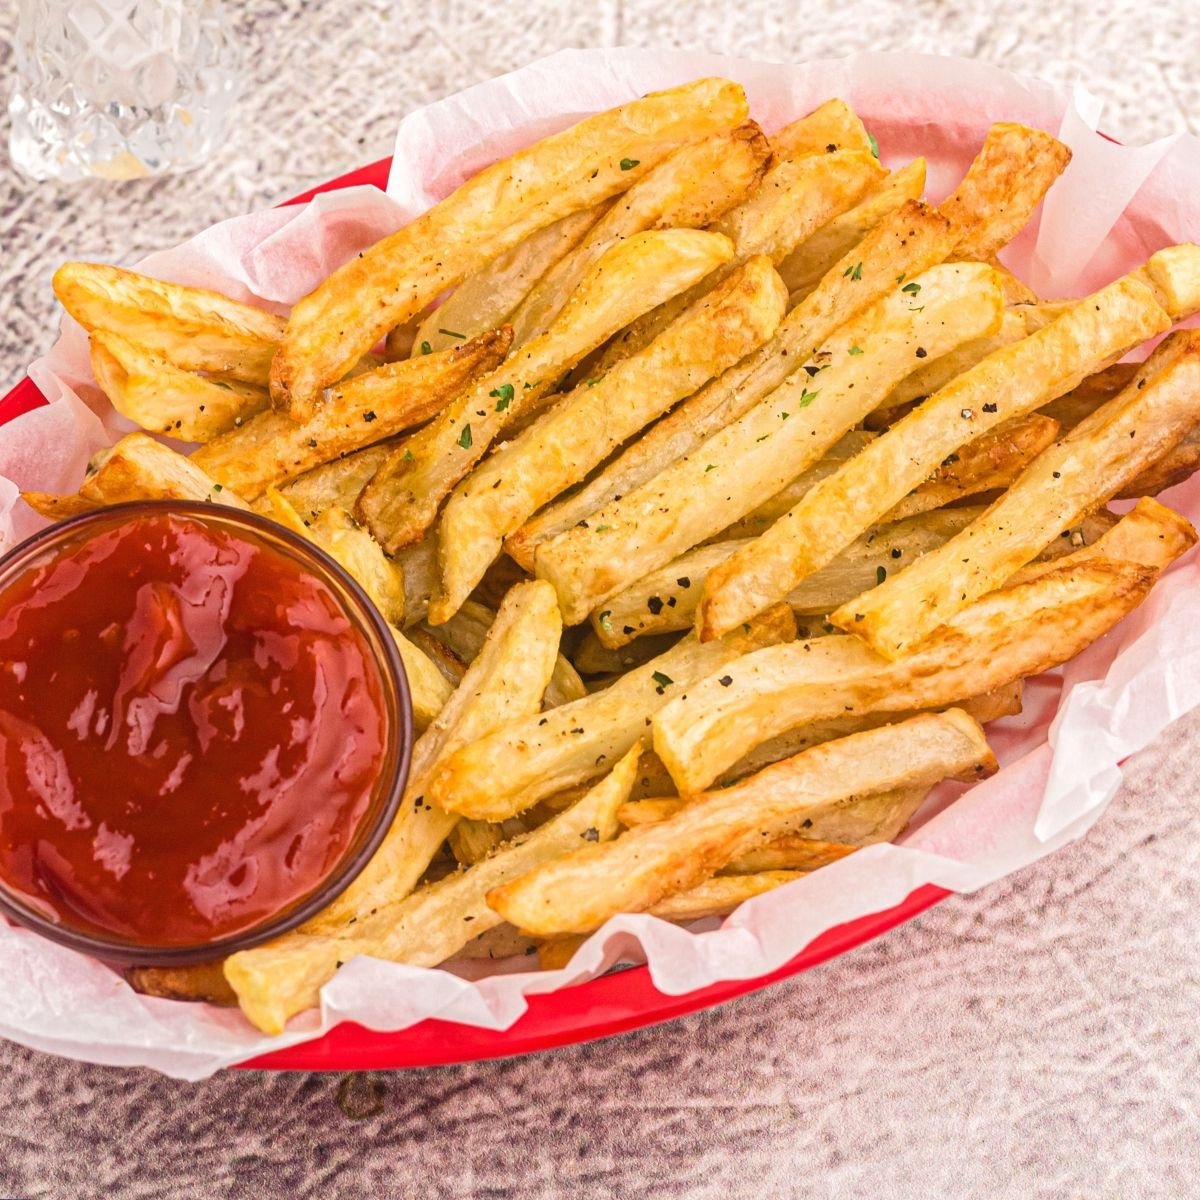 Golden and crispy, seasoned french fries served in a red basket with ketchup.